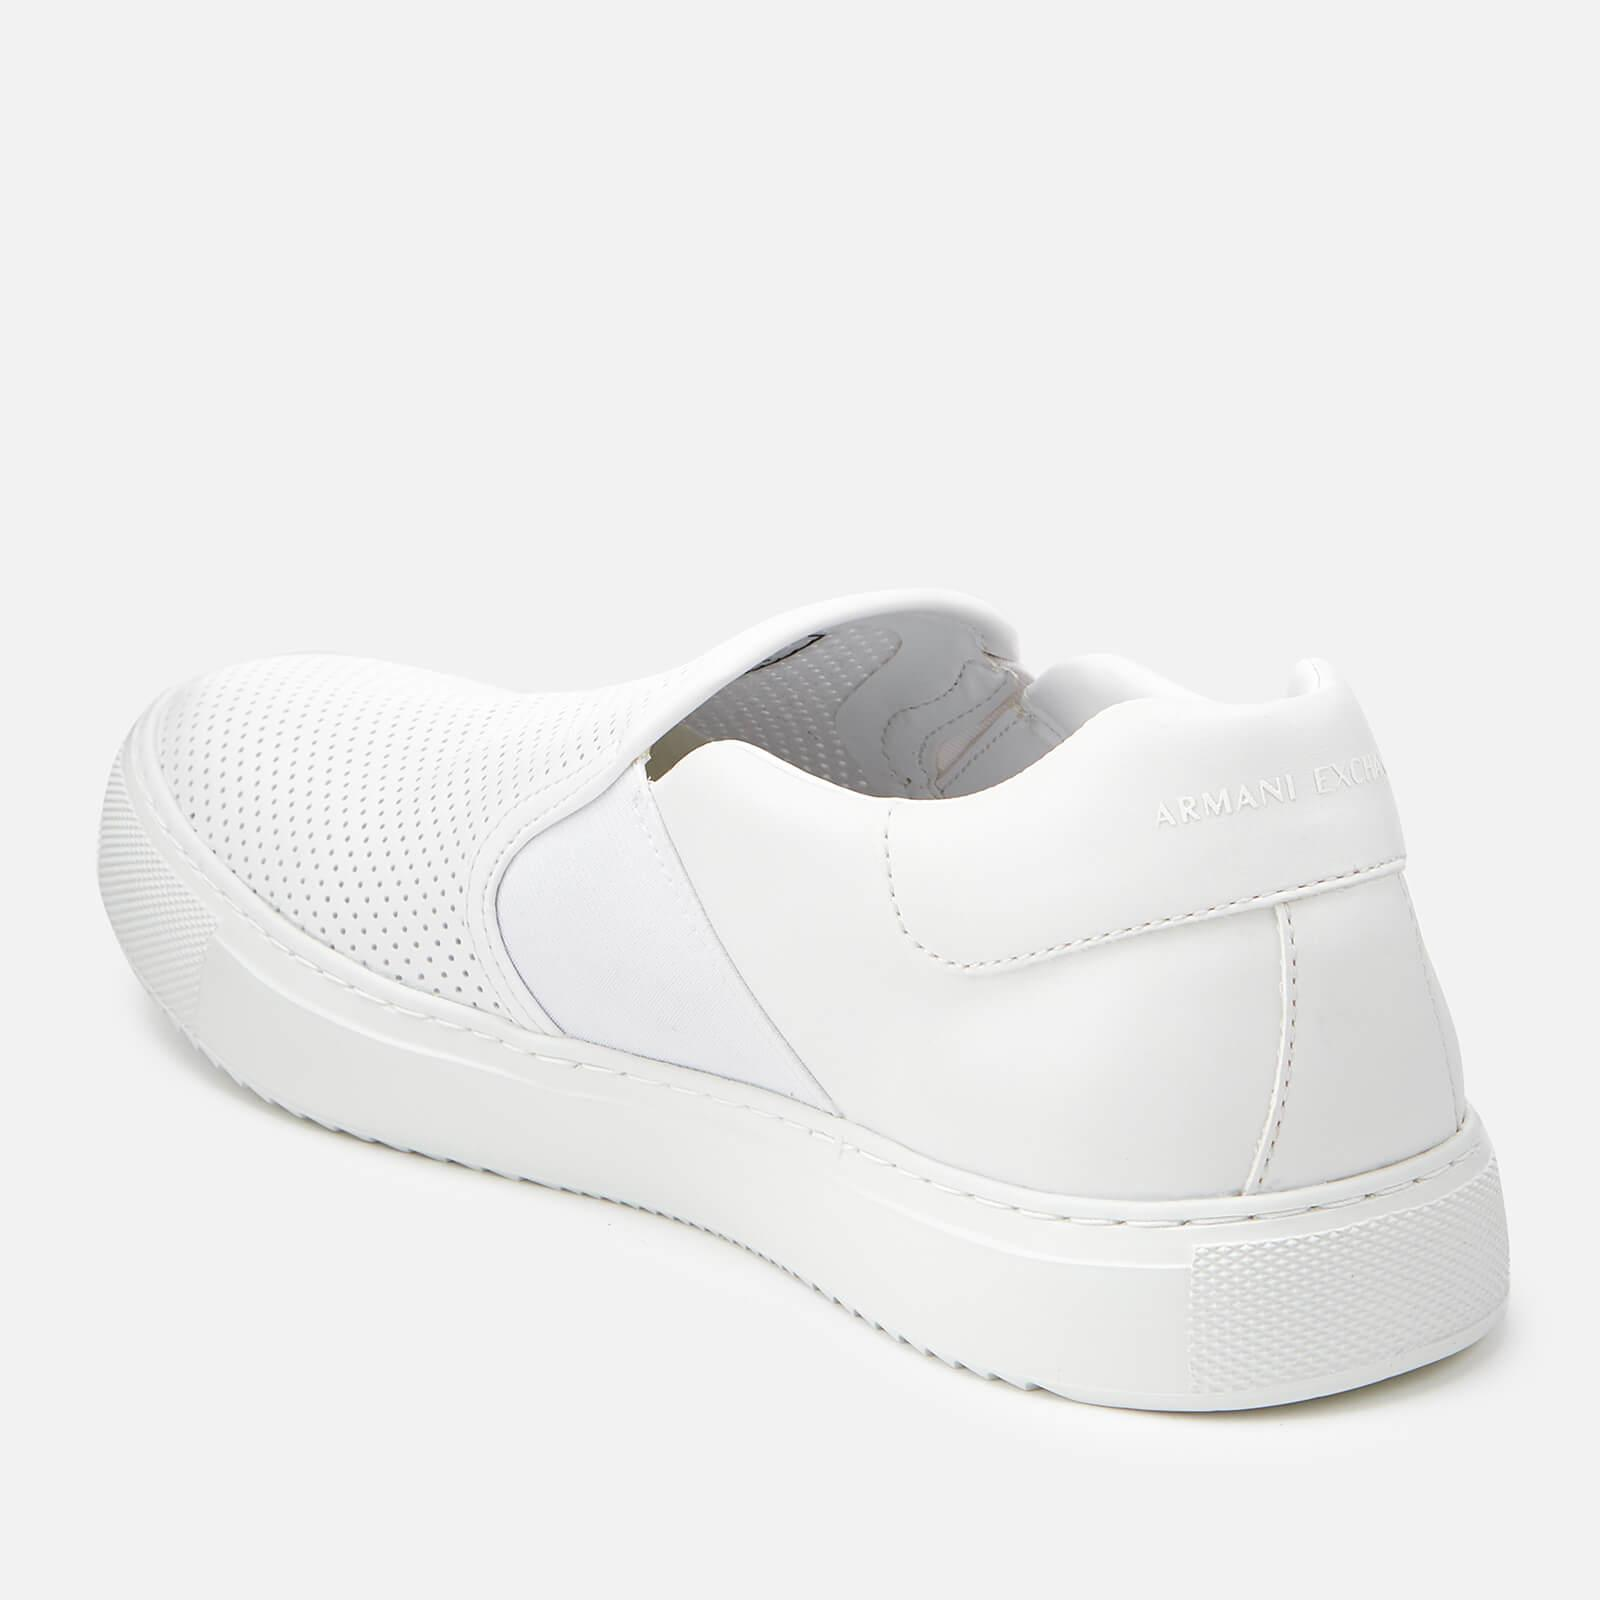 579d29aaf5b Armani Exchange Slip-on Trainers in White for Men - Lyst